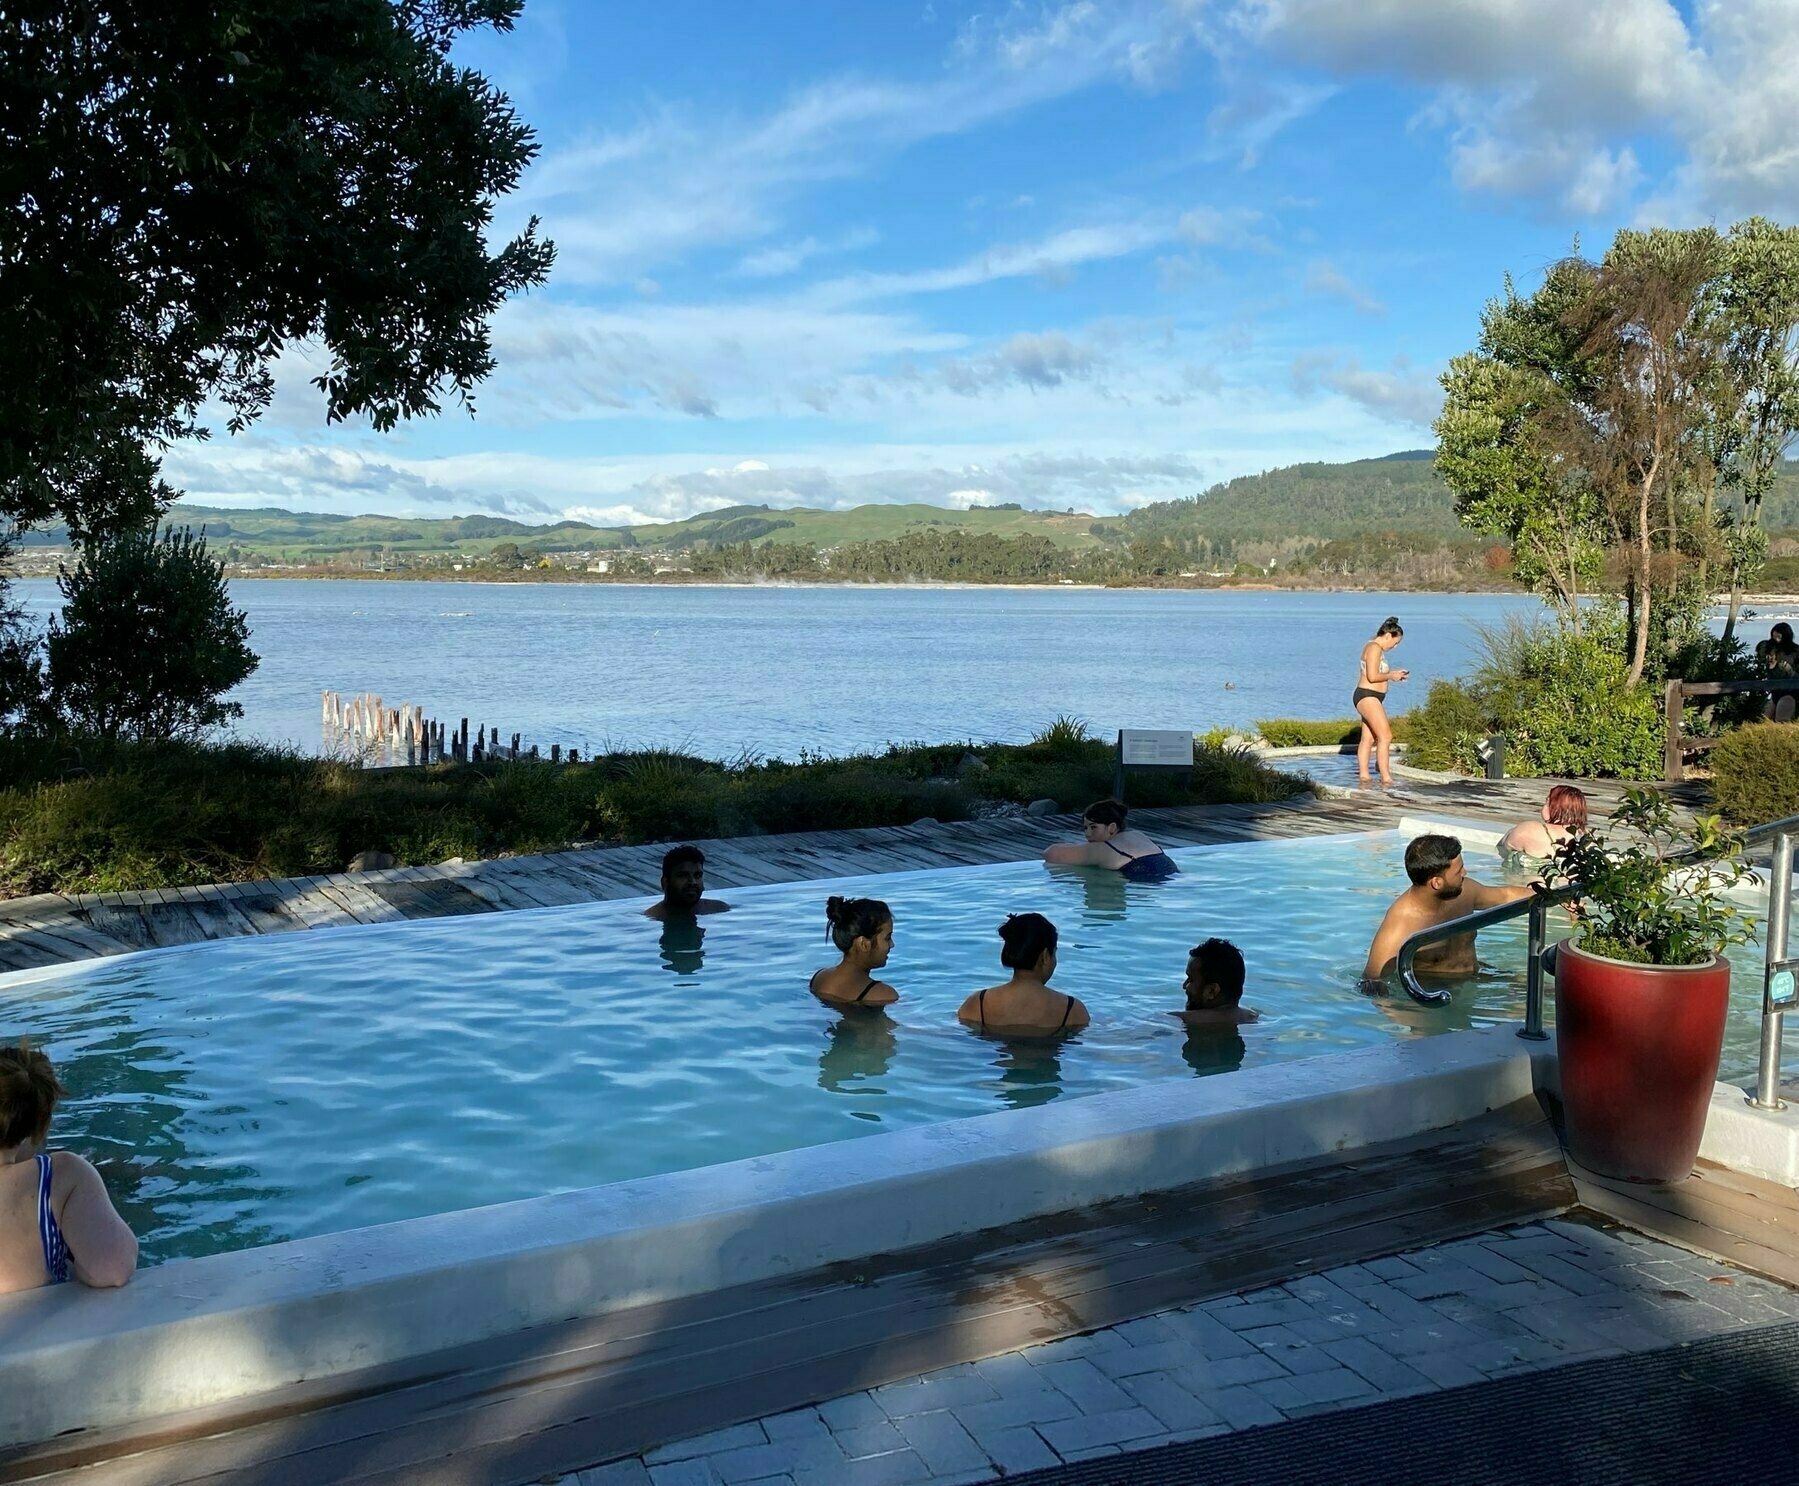 People in a thermal spa with Lake Rotorua behind.